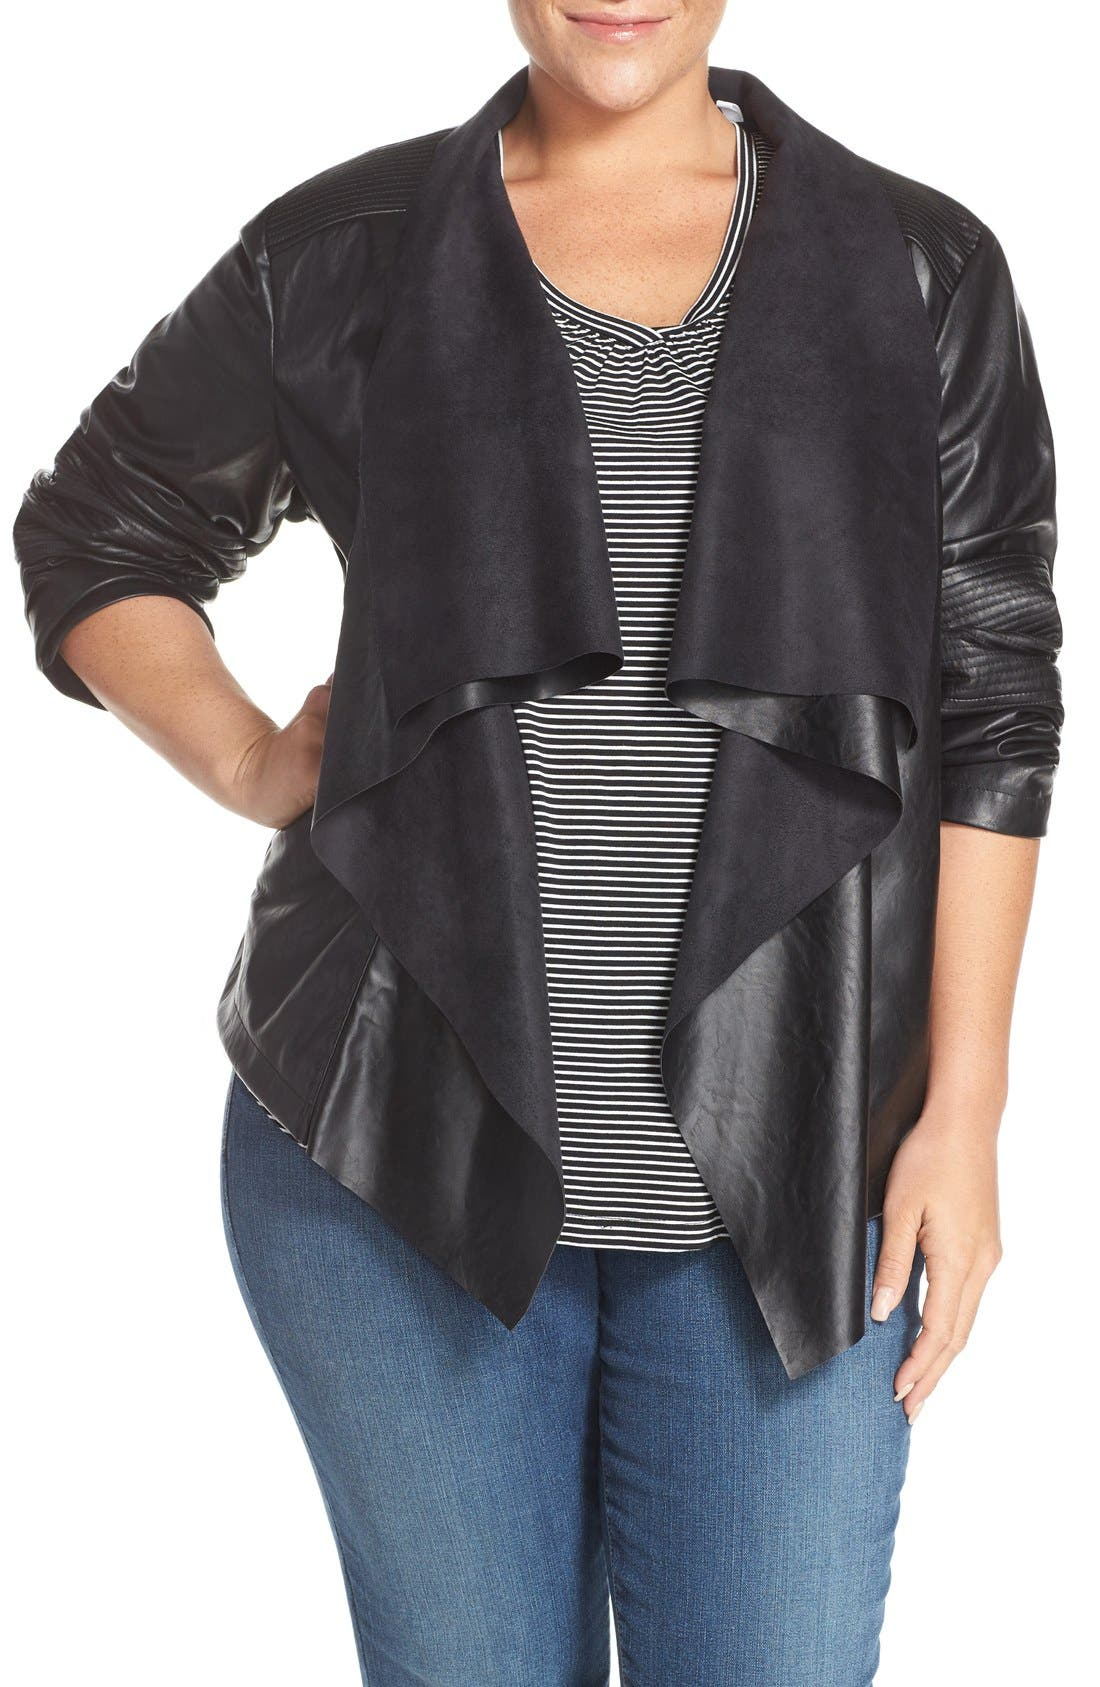 Alternate Image 1 Selected - Levi's® 'Cascade' Faux Leather Jacket (Plus Size)